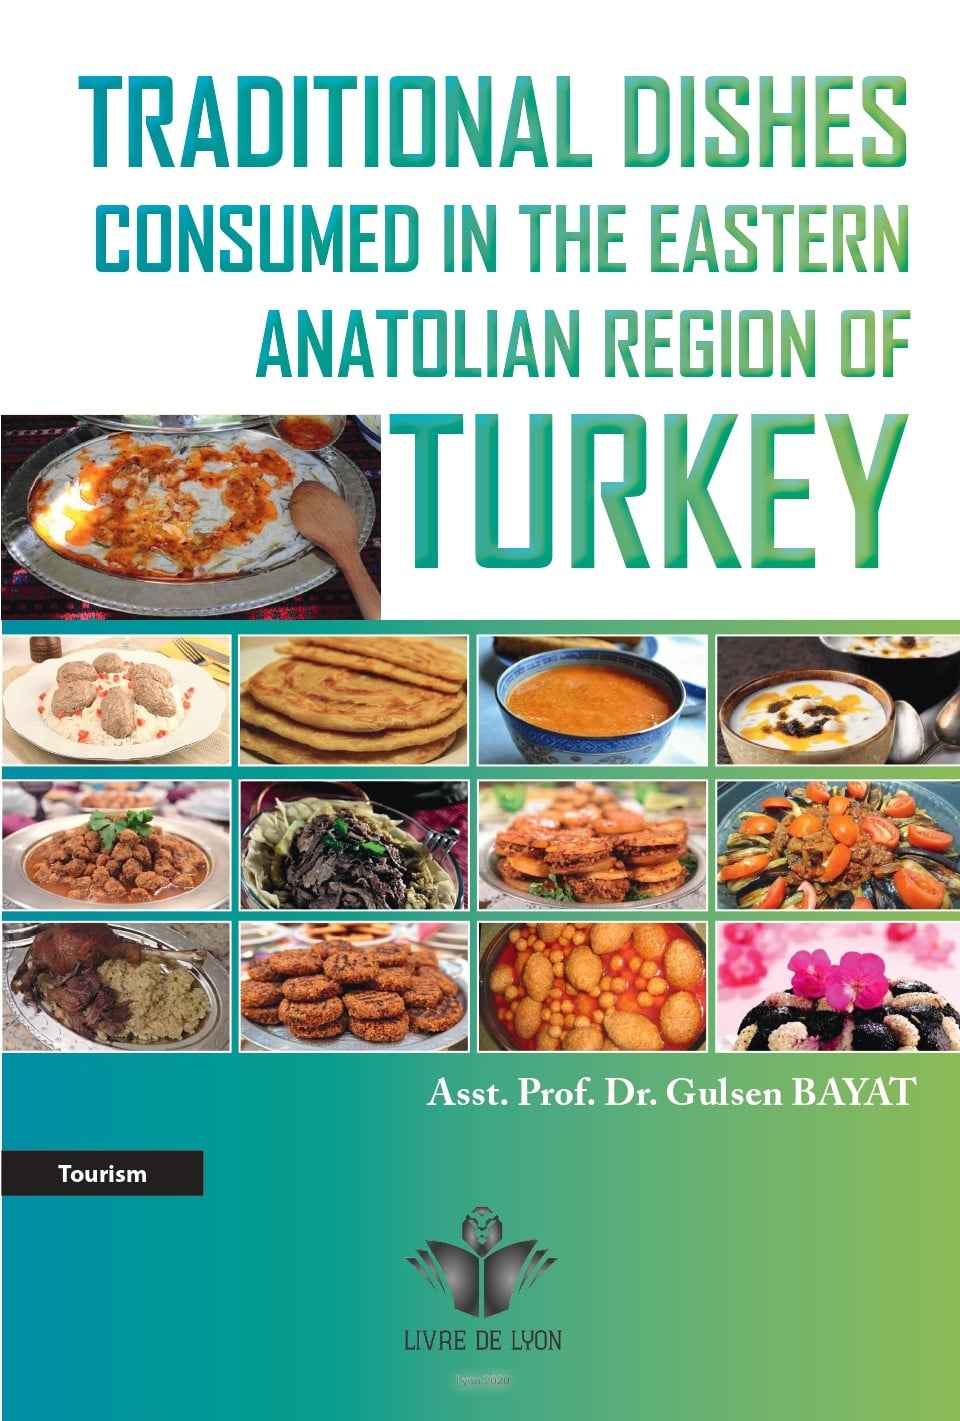 Traditional Dishes Consumed  in the  Eastern Anatolian Region  of  Turkey